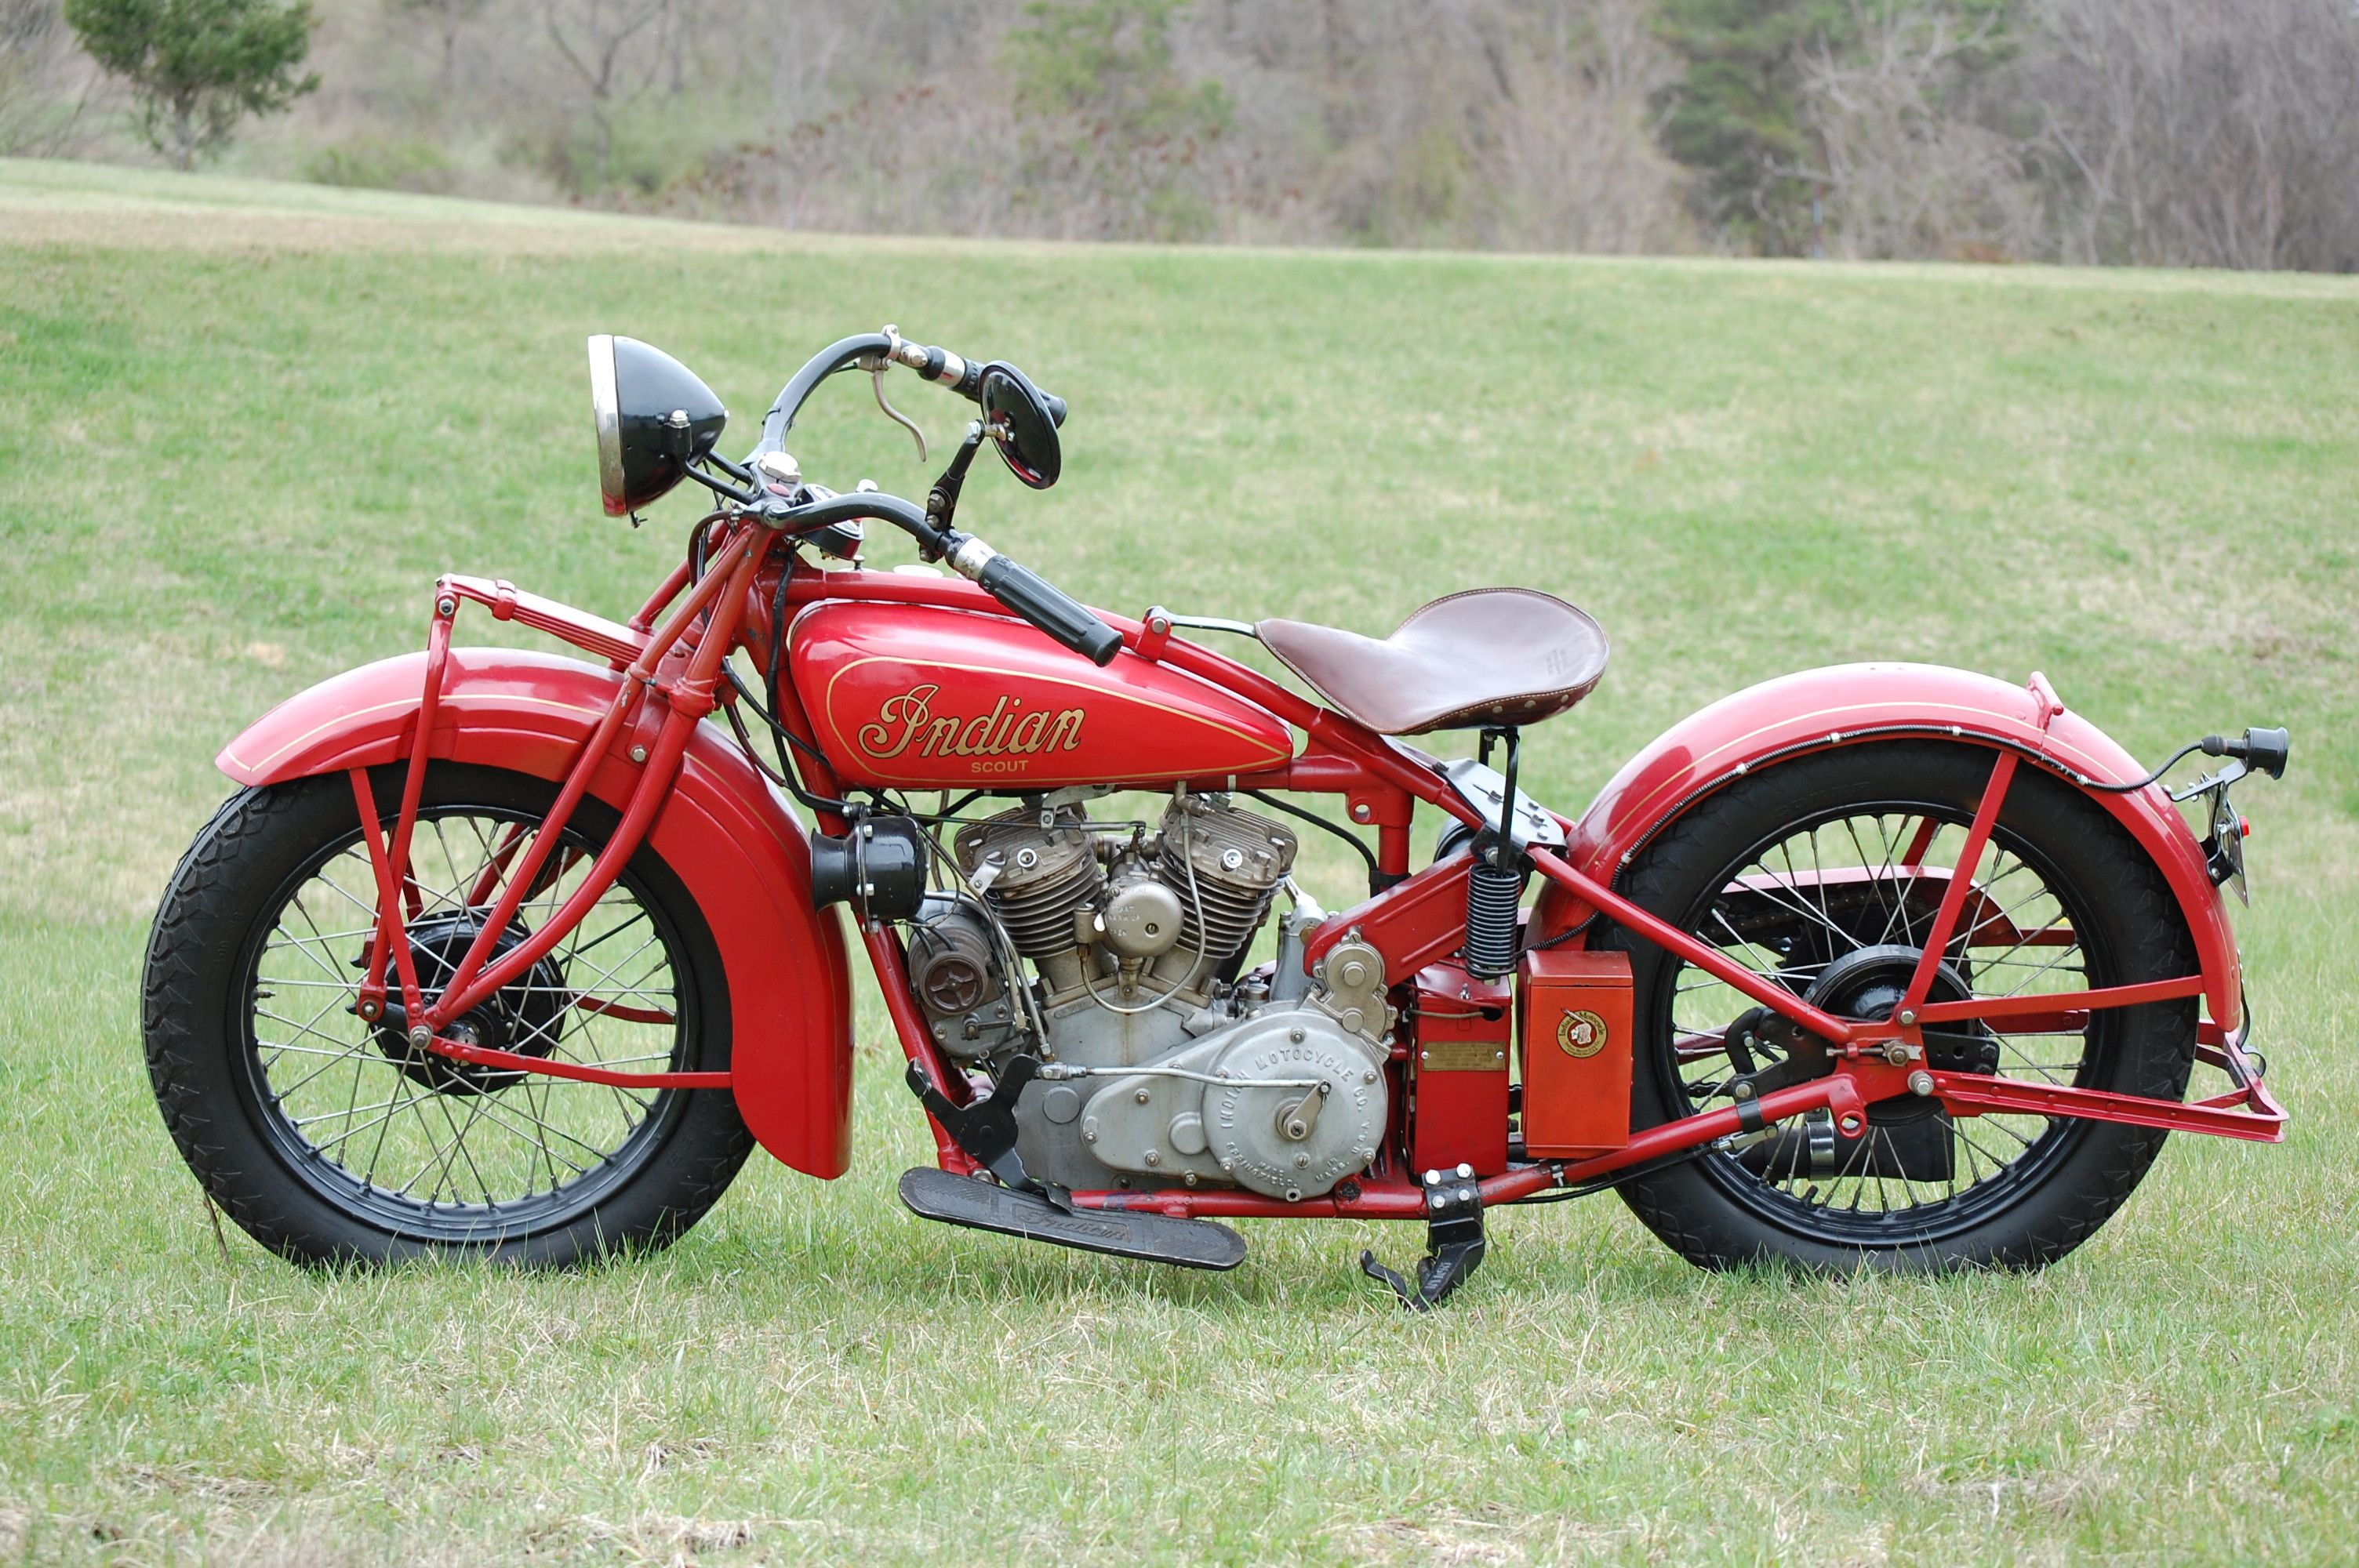 1927 Indian Scout 600cc Motorcycle 30 000 Indian Motorcycle